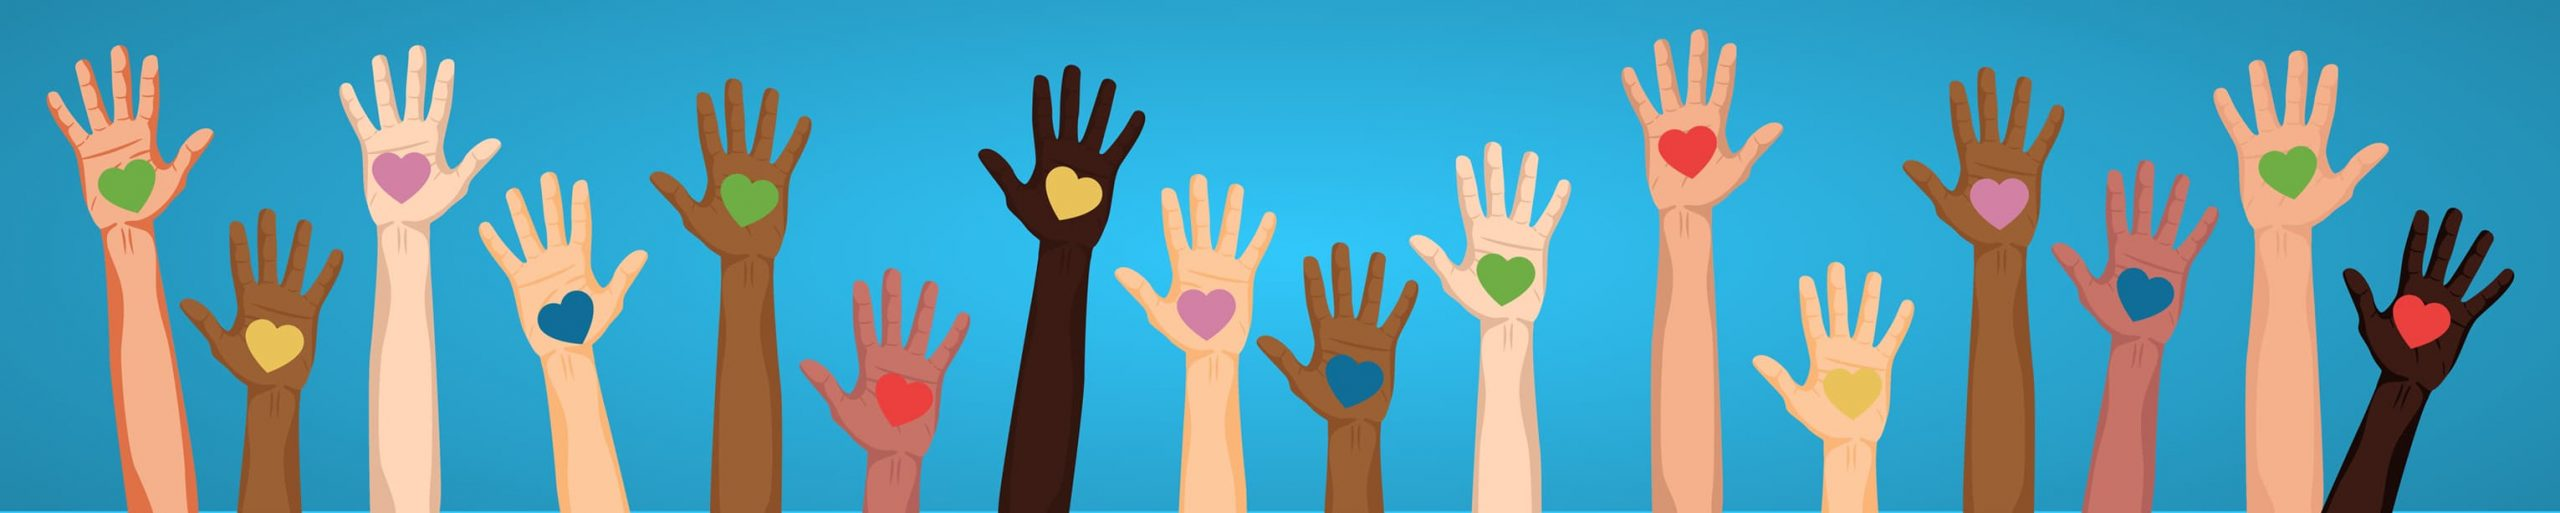 Illustration of many hands with hearts in the palms on a light blue background.